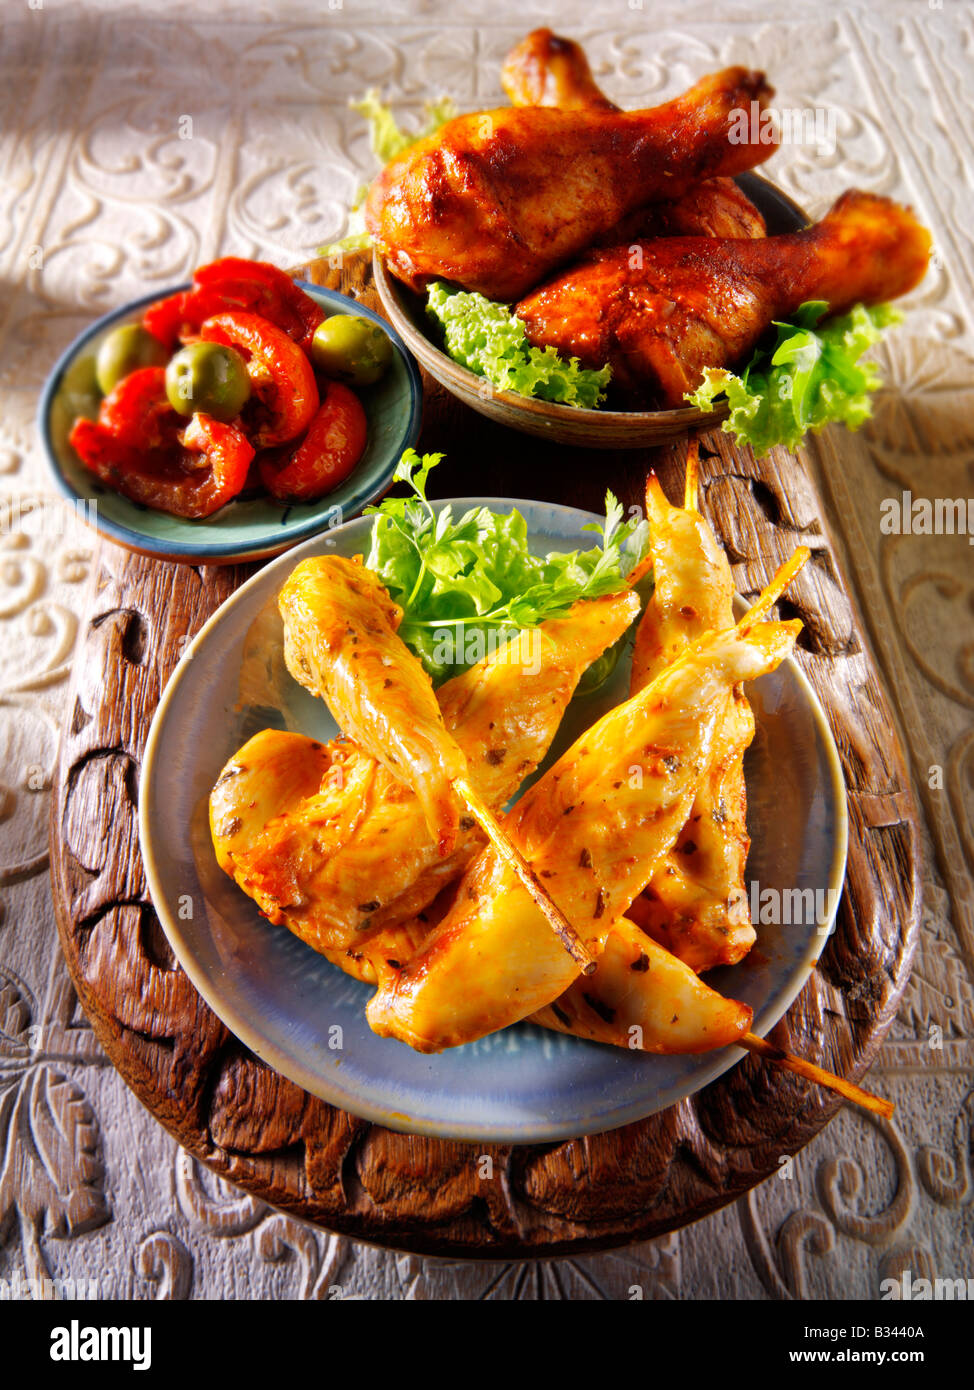 party food - From Front - Marinated chicken skewers, Marinaded chicken drum sticks and sun blushed tomatoes. Stock Photo